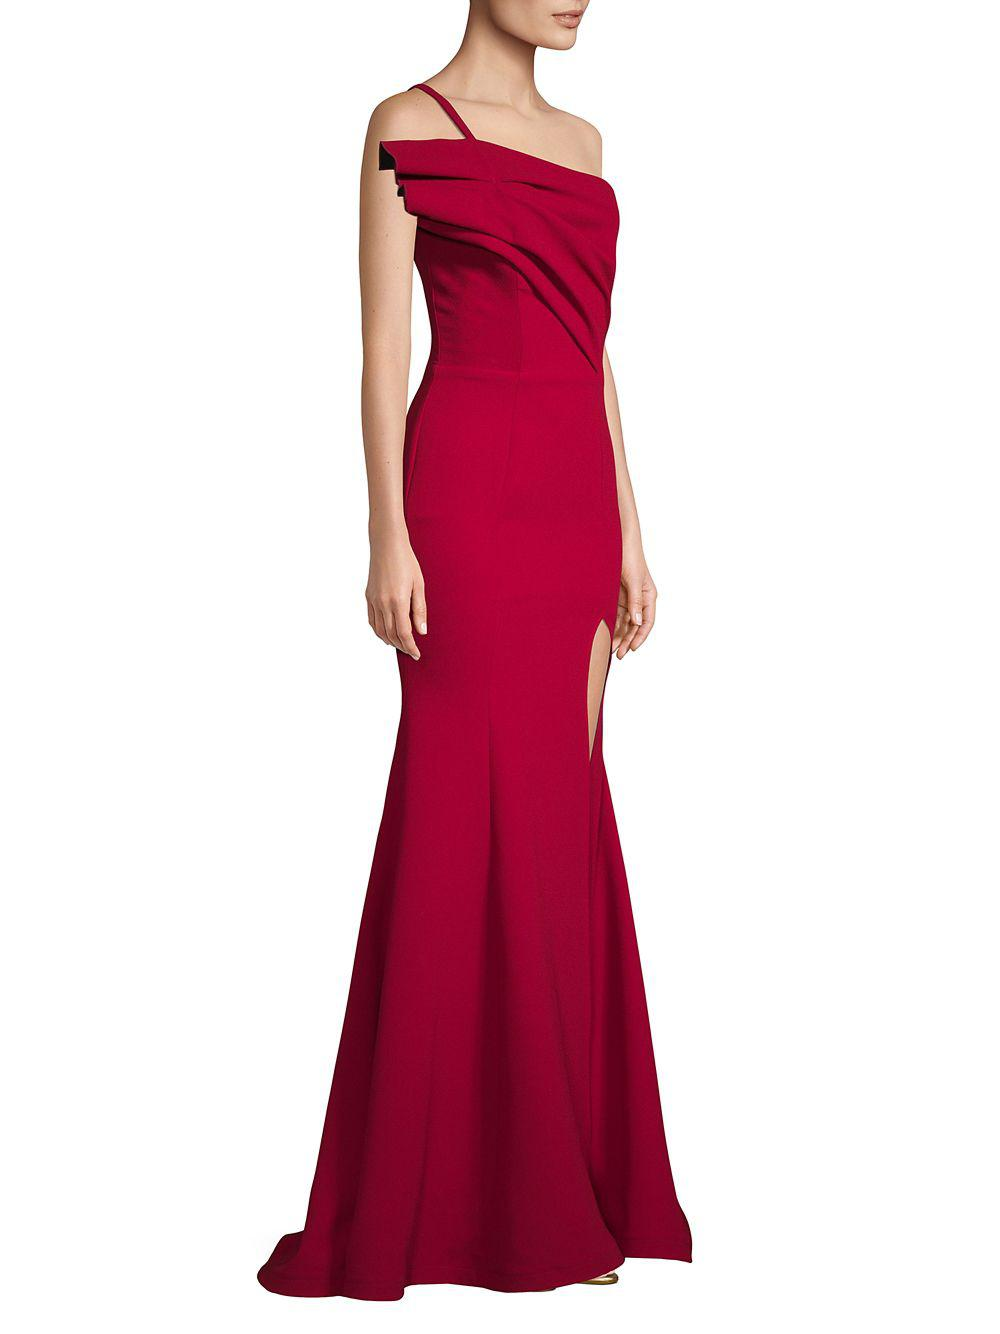 a41ac41cc4d6 Nicole Bakti - Red One-shoulder Slit Gown - Lyst. View fullscreen